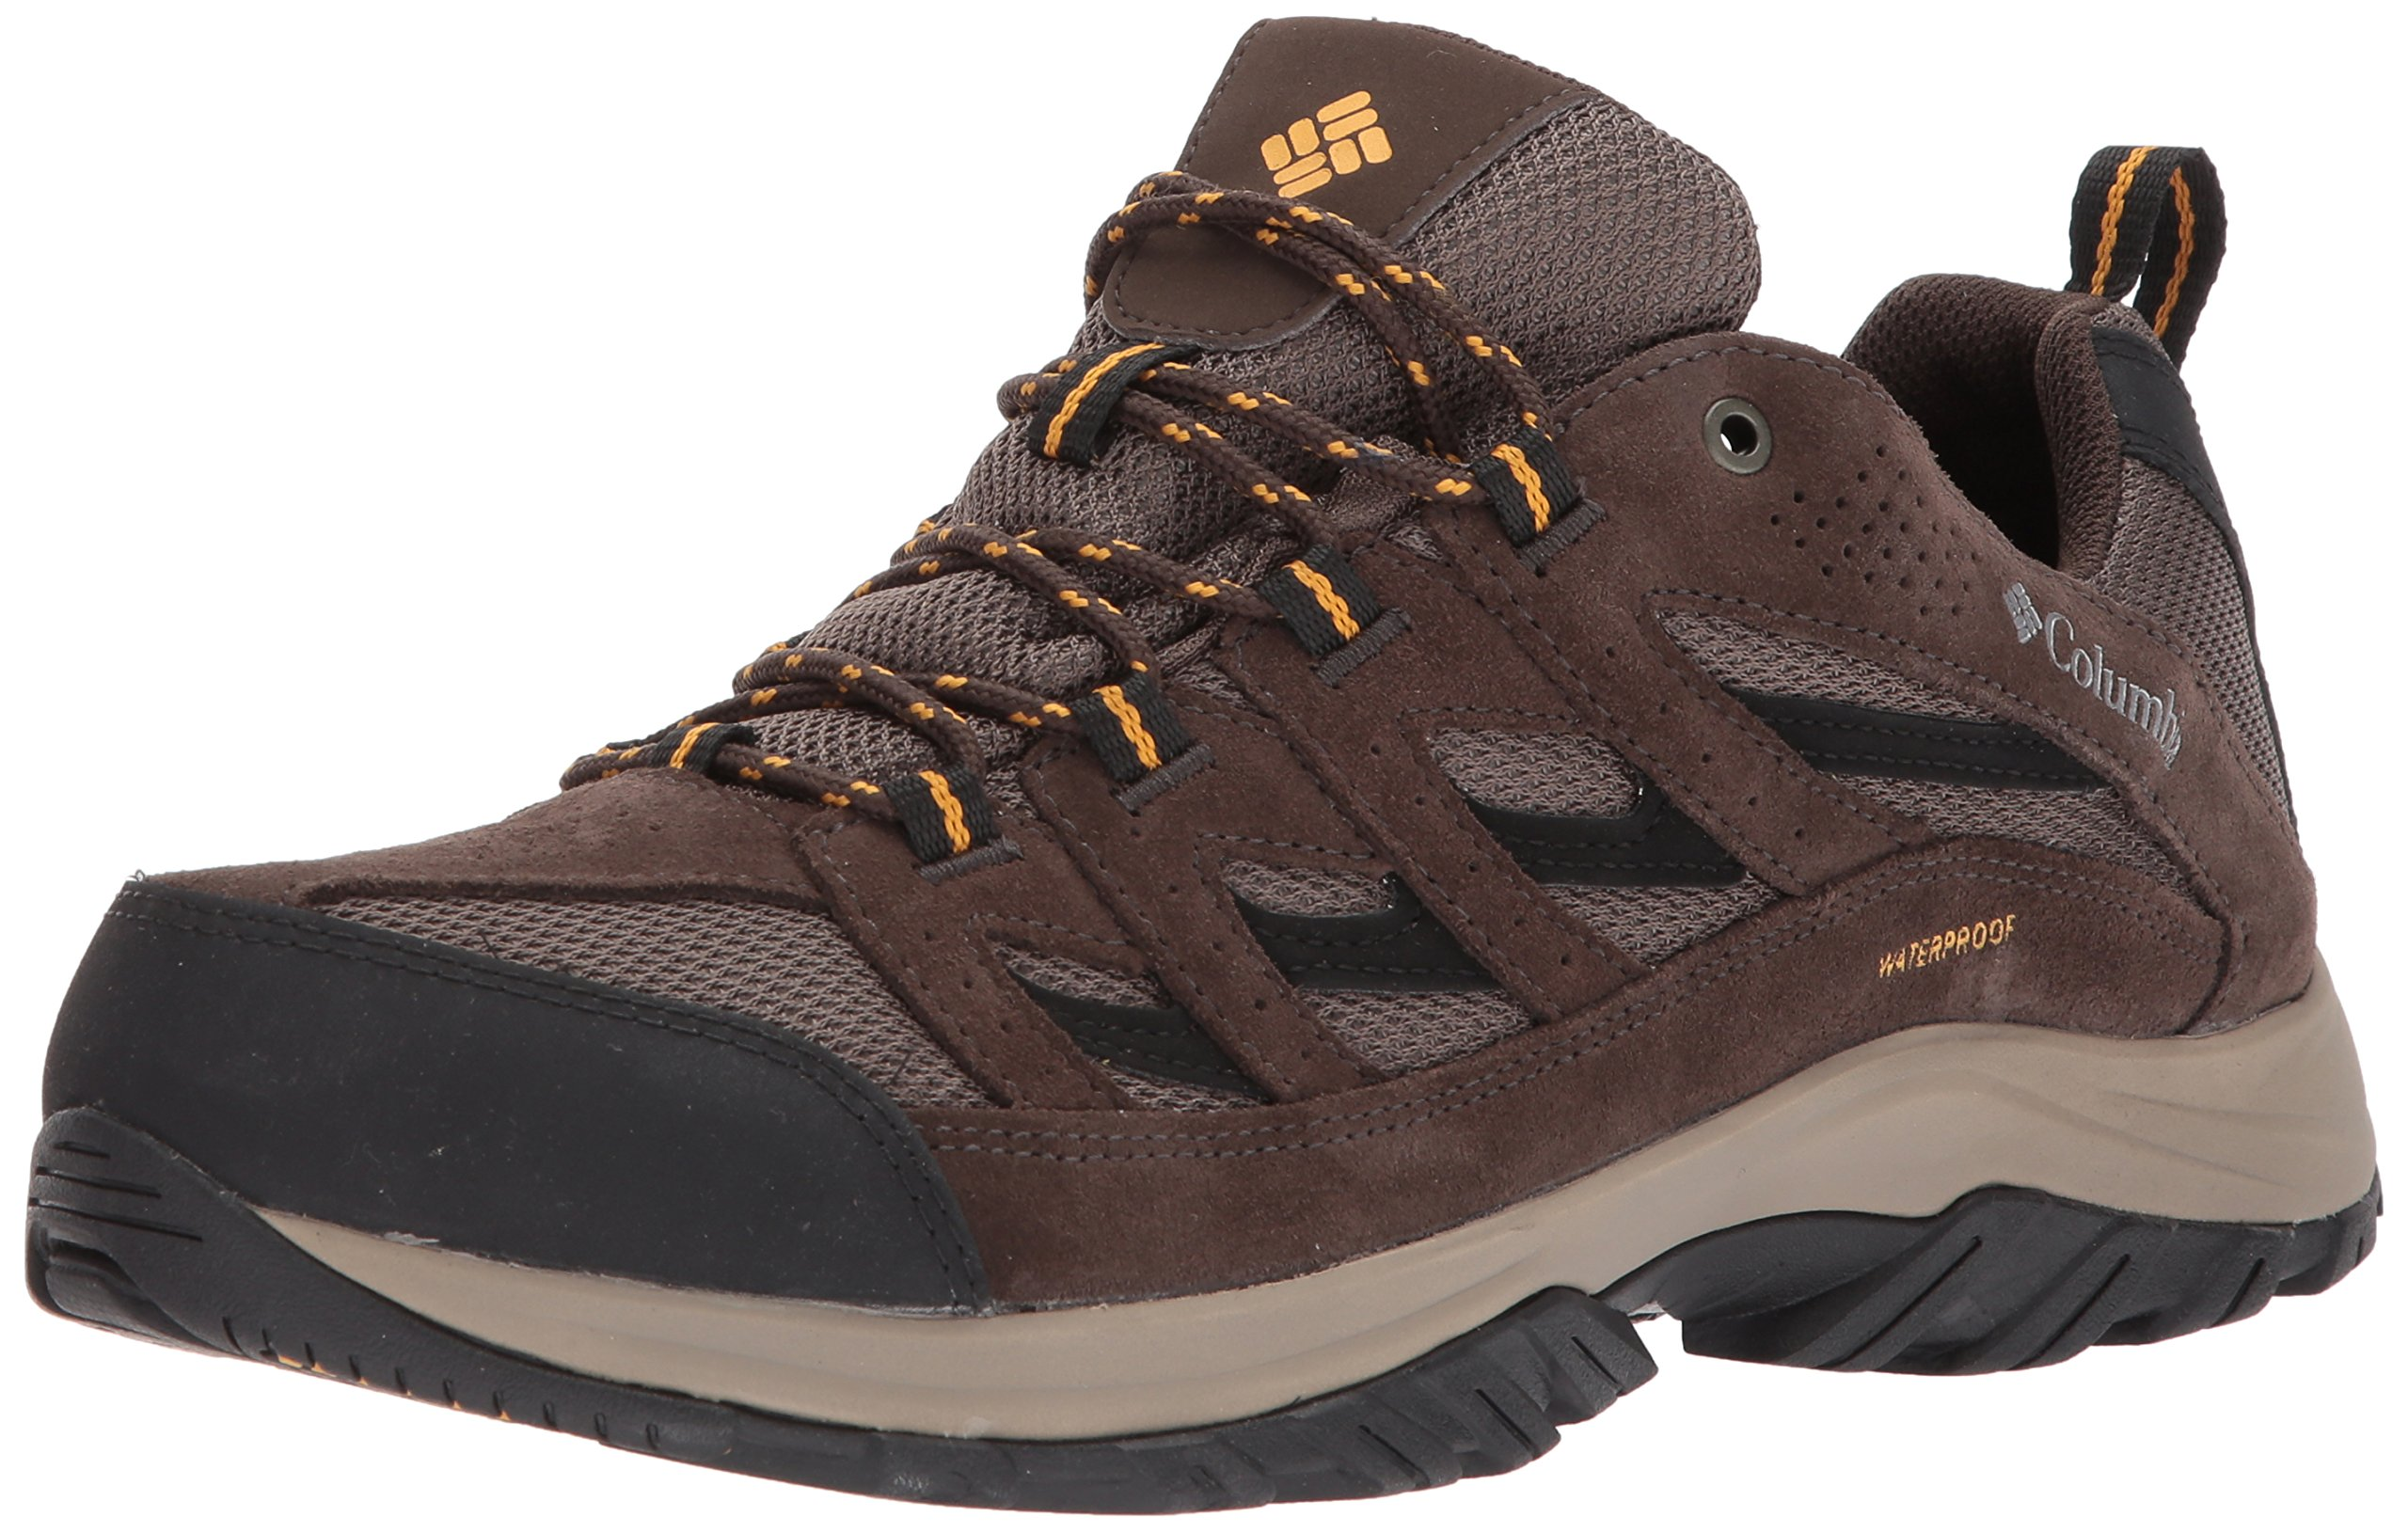 Columbia Men's Crestwood Waterproof Hiking Boot, Mud, Squash, 10 Regular US